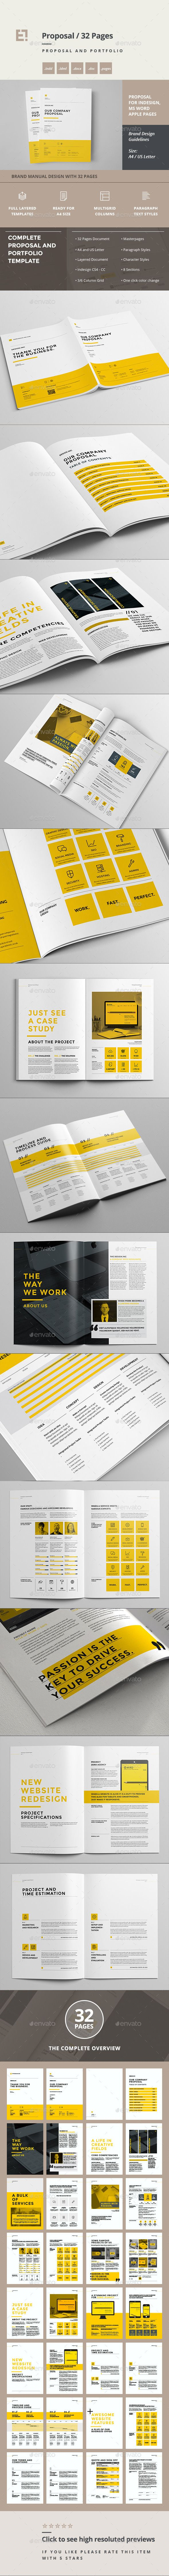 minimal and professional proposal brochure template for creative businesses created in adobe indesign microsoft word and apple pages in international din